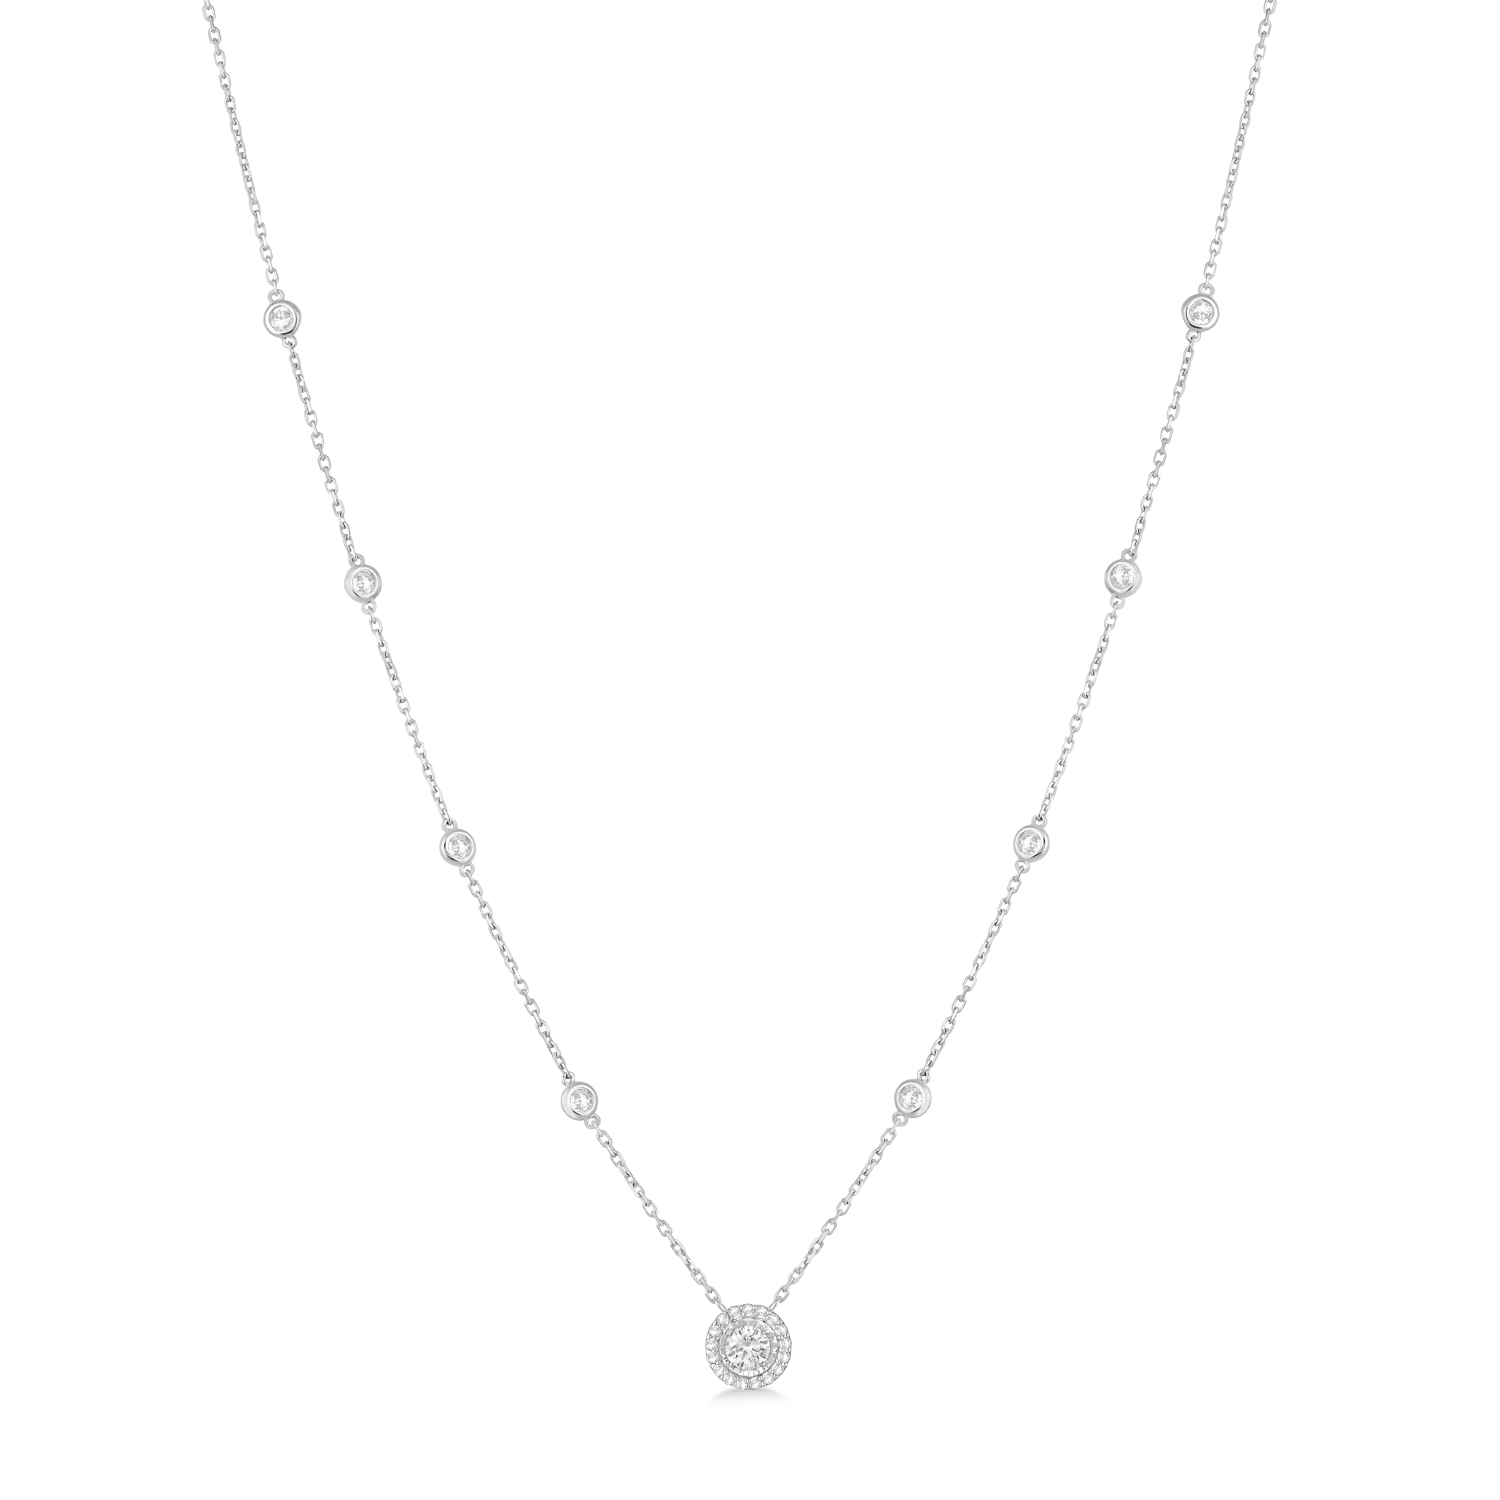 Diamond Halo Pendant Station Necklace in 14k White Gold (1.25 ctw)